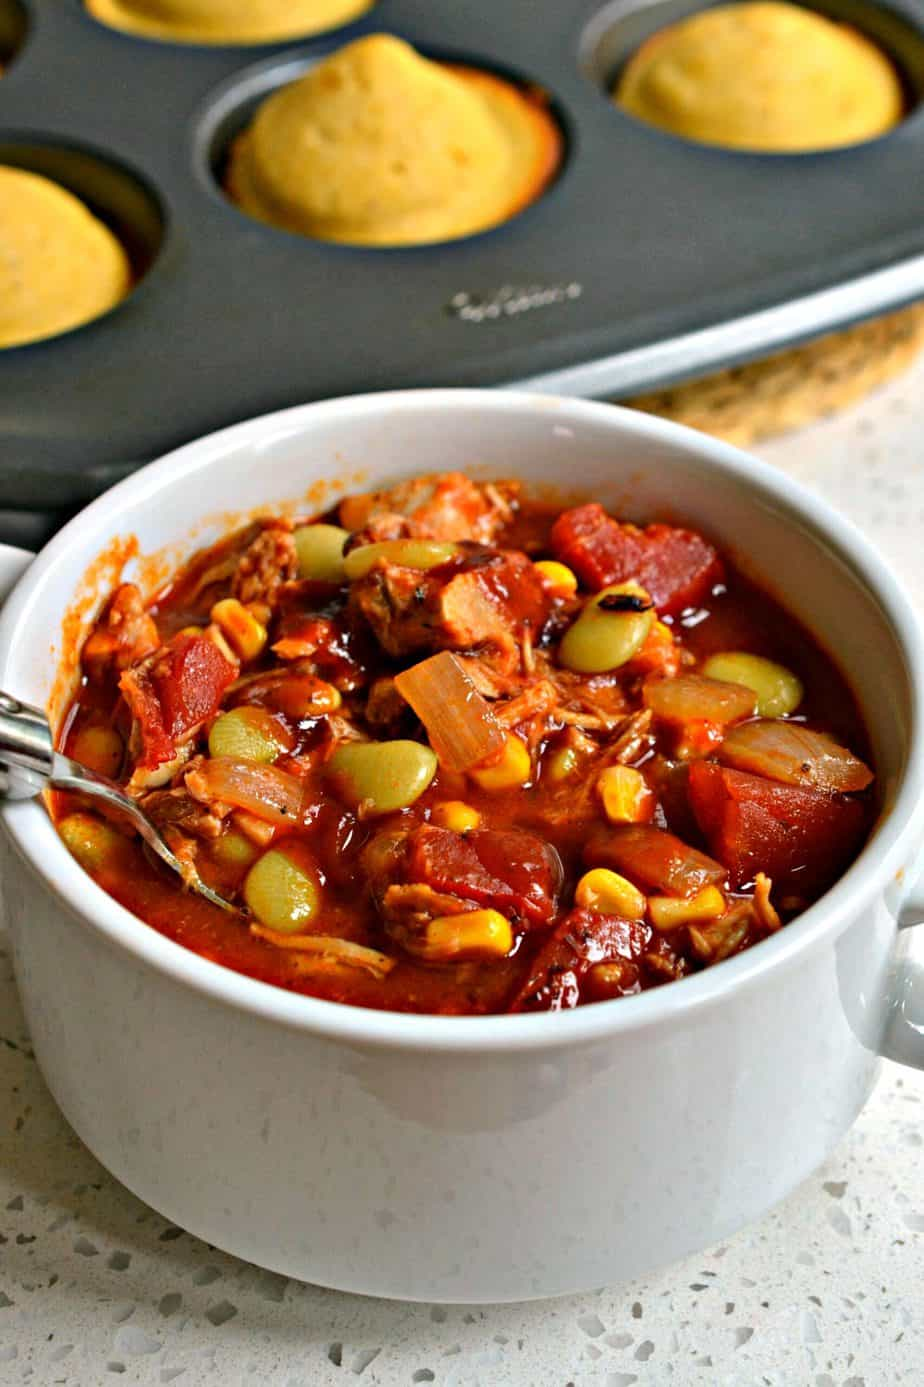 Brunswick Stew has a tangy sweet broth seasoned with barbecue sauce and a perfect blend of spices.